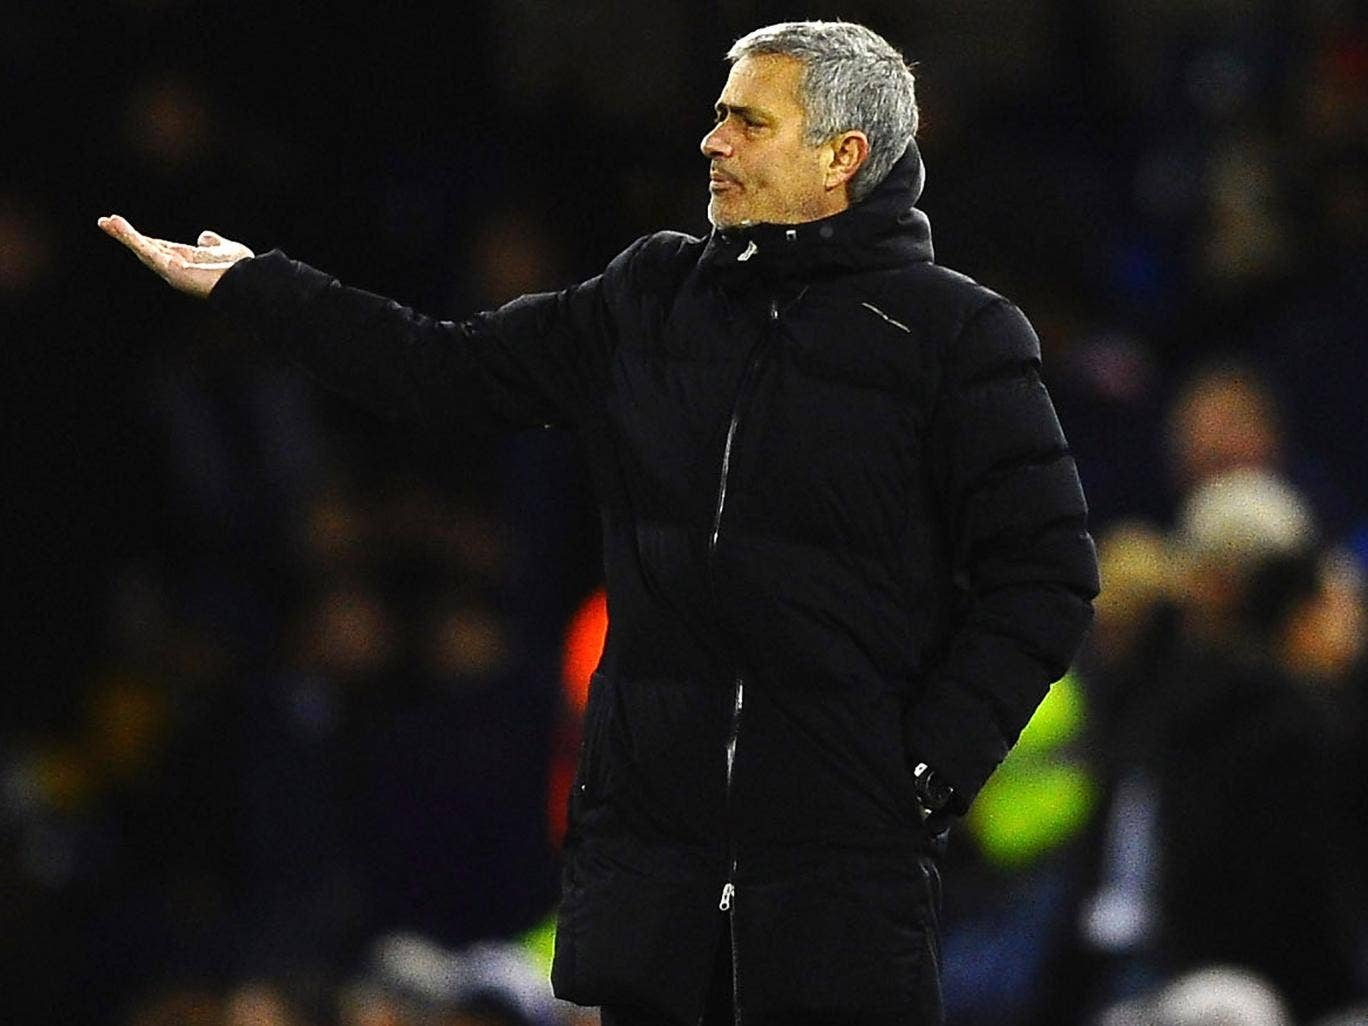 Jose Mourinho gestures from the sideline